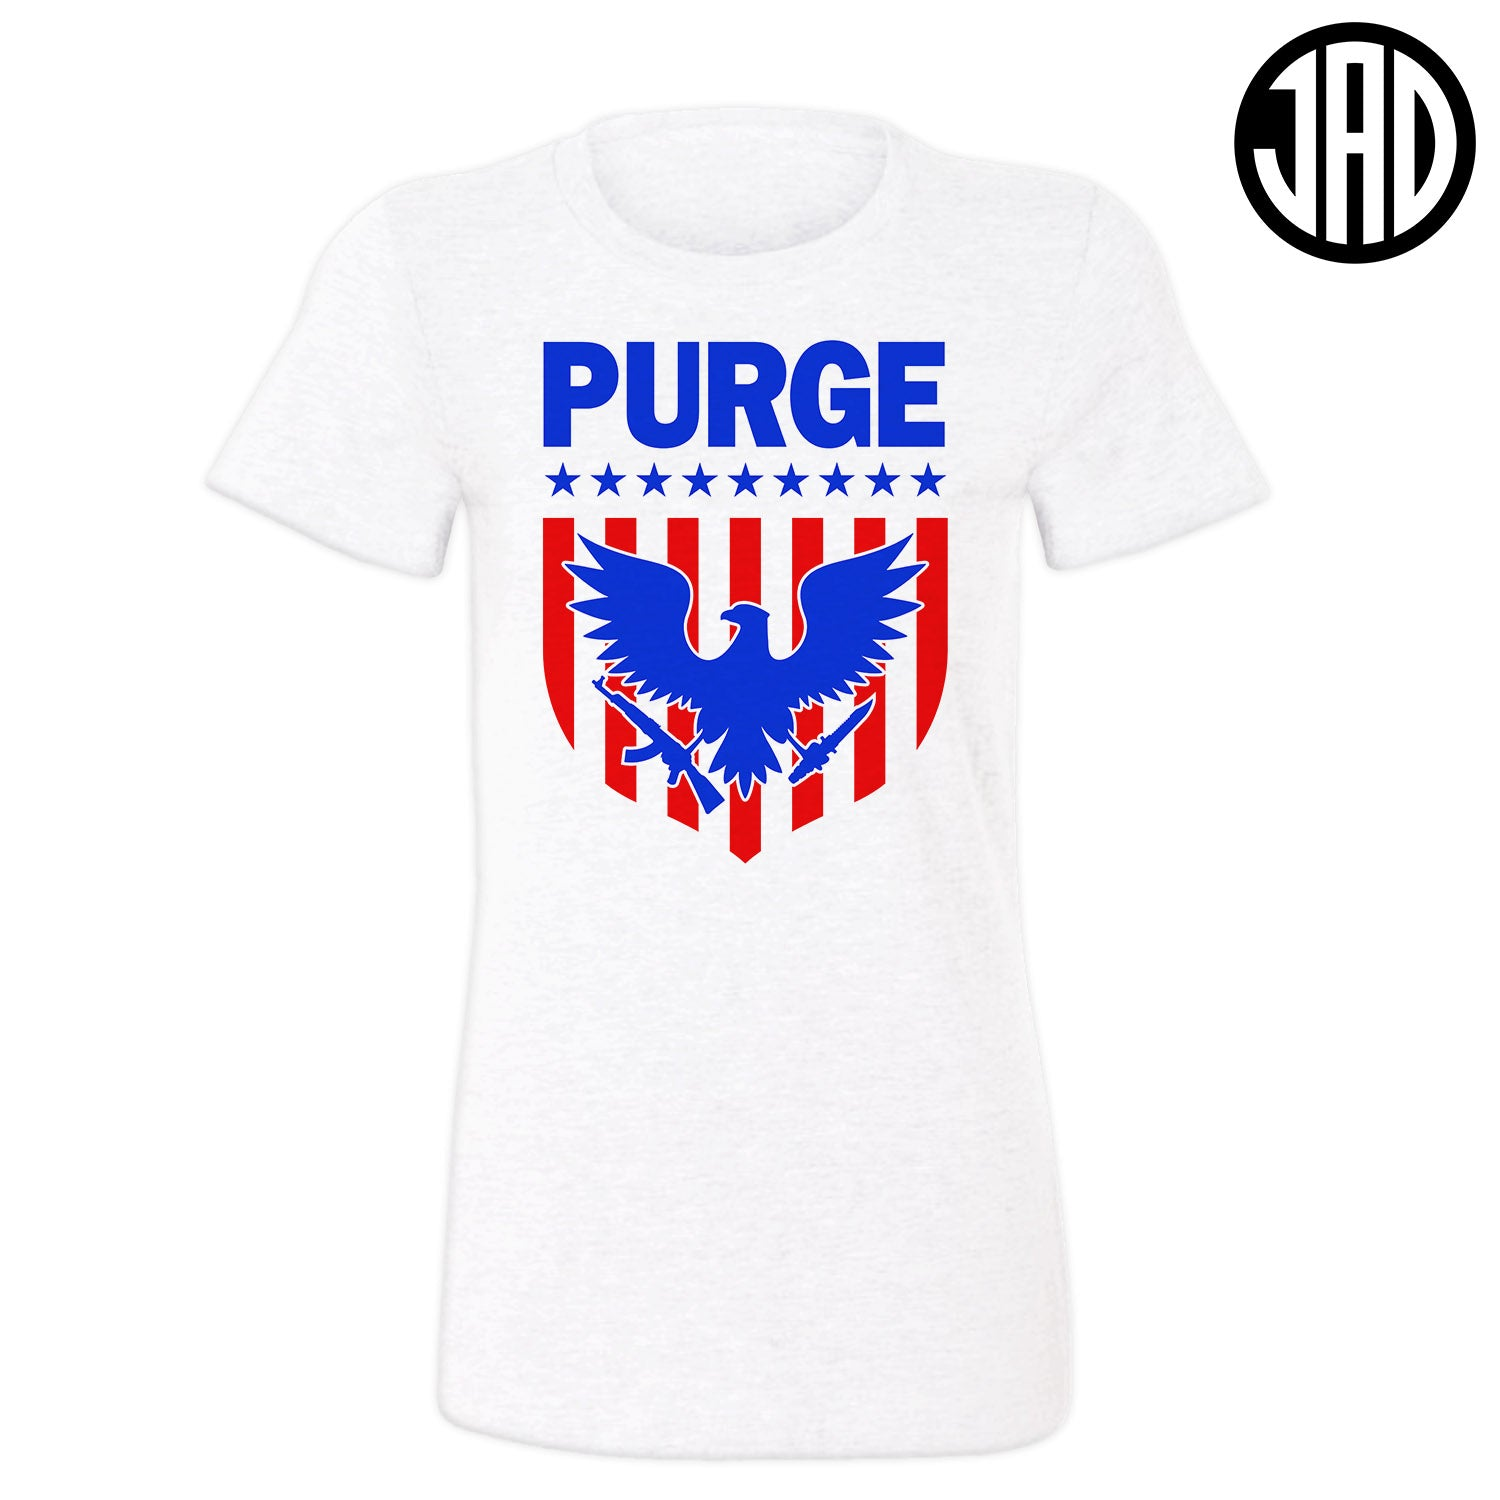 Purge Shield - Women's Tee